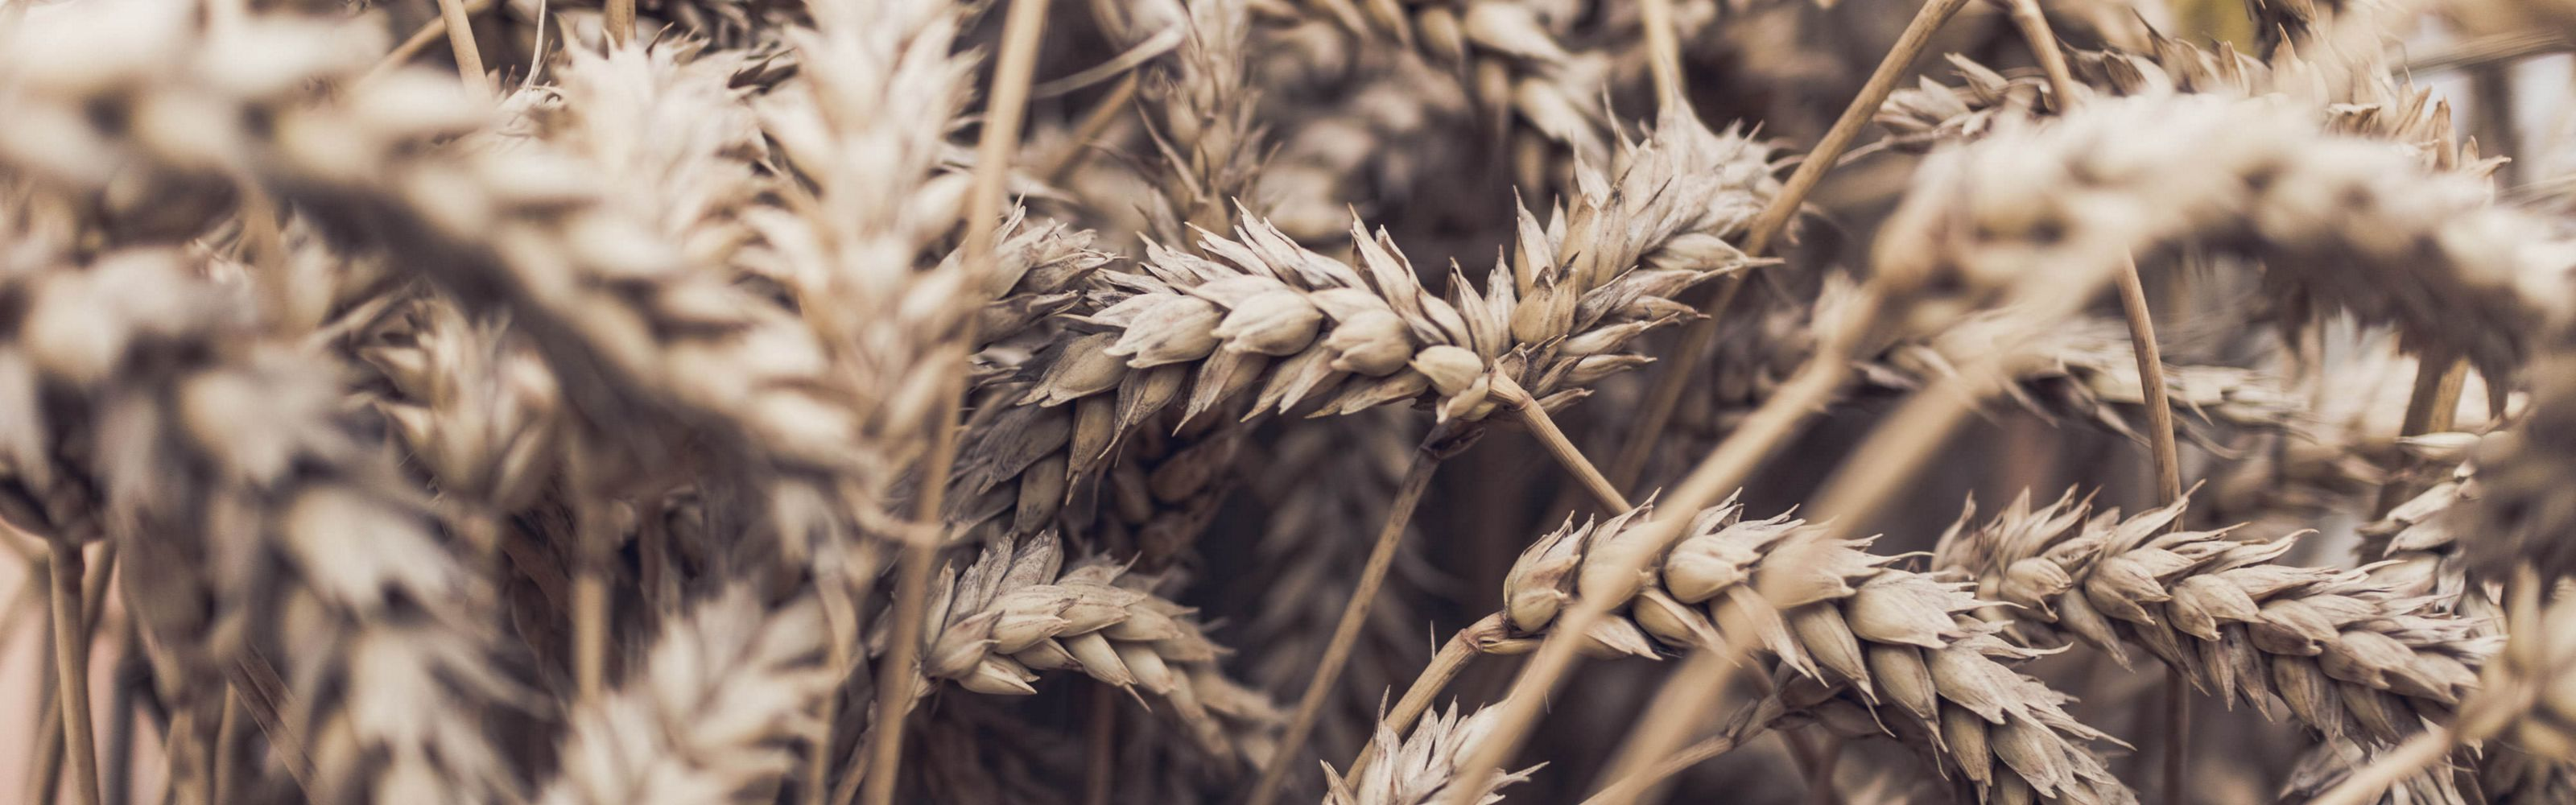 Close up view of wheat in a field